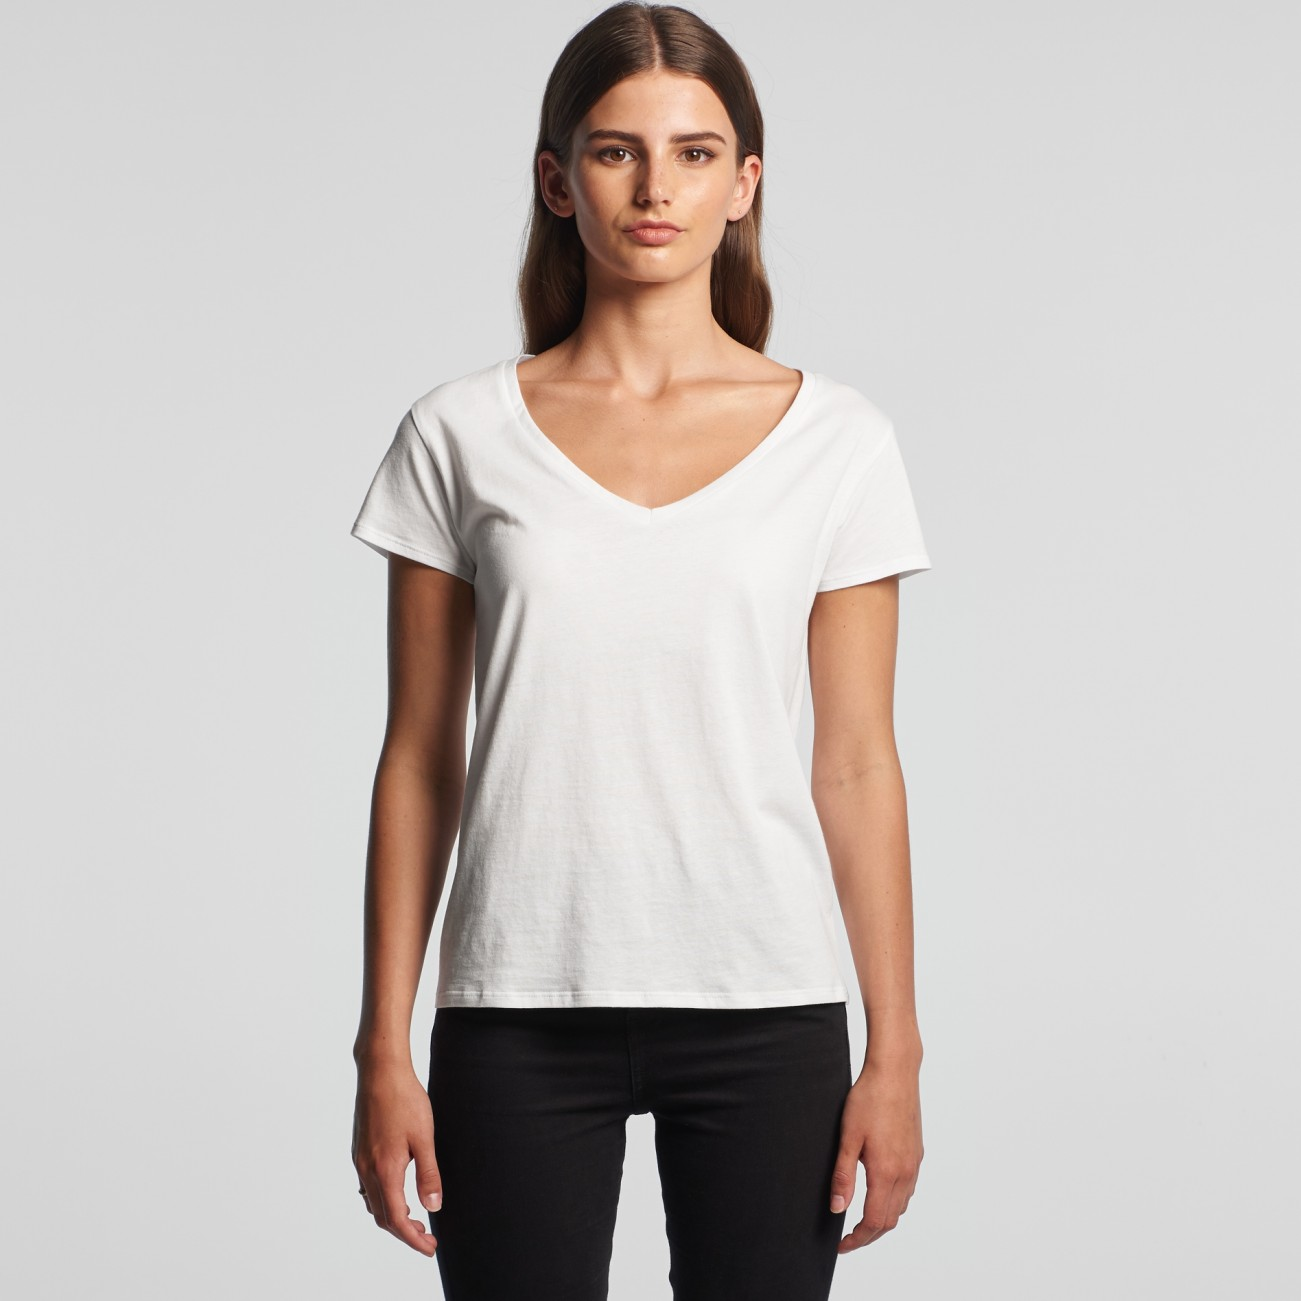 4047 WOMENS LA BREA V-NECK TEE